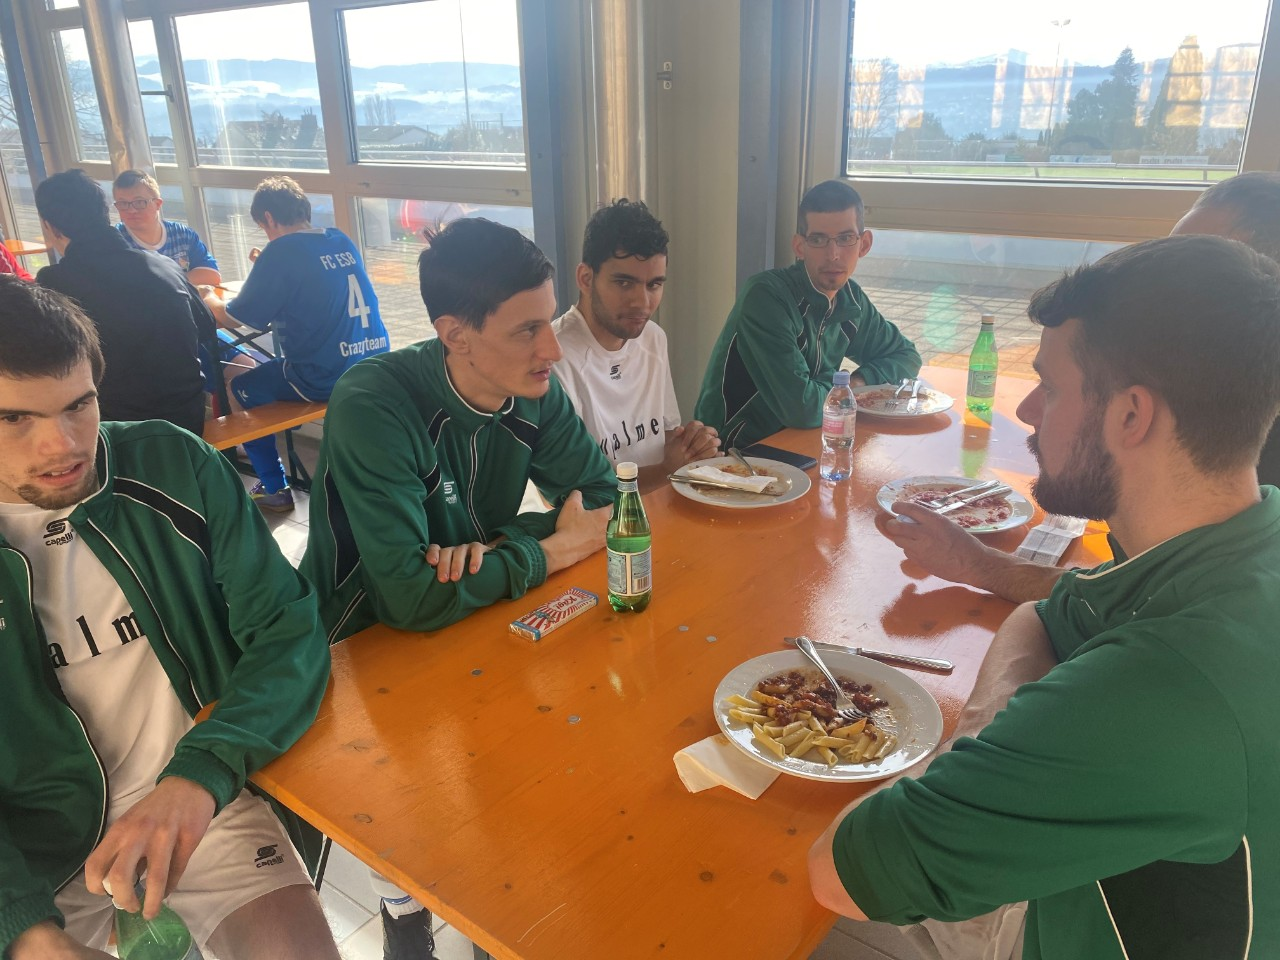 FC Palme players discussing their idols over lunch